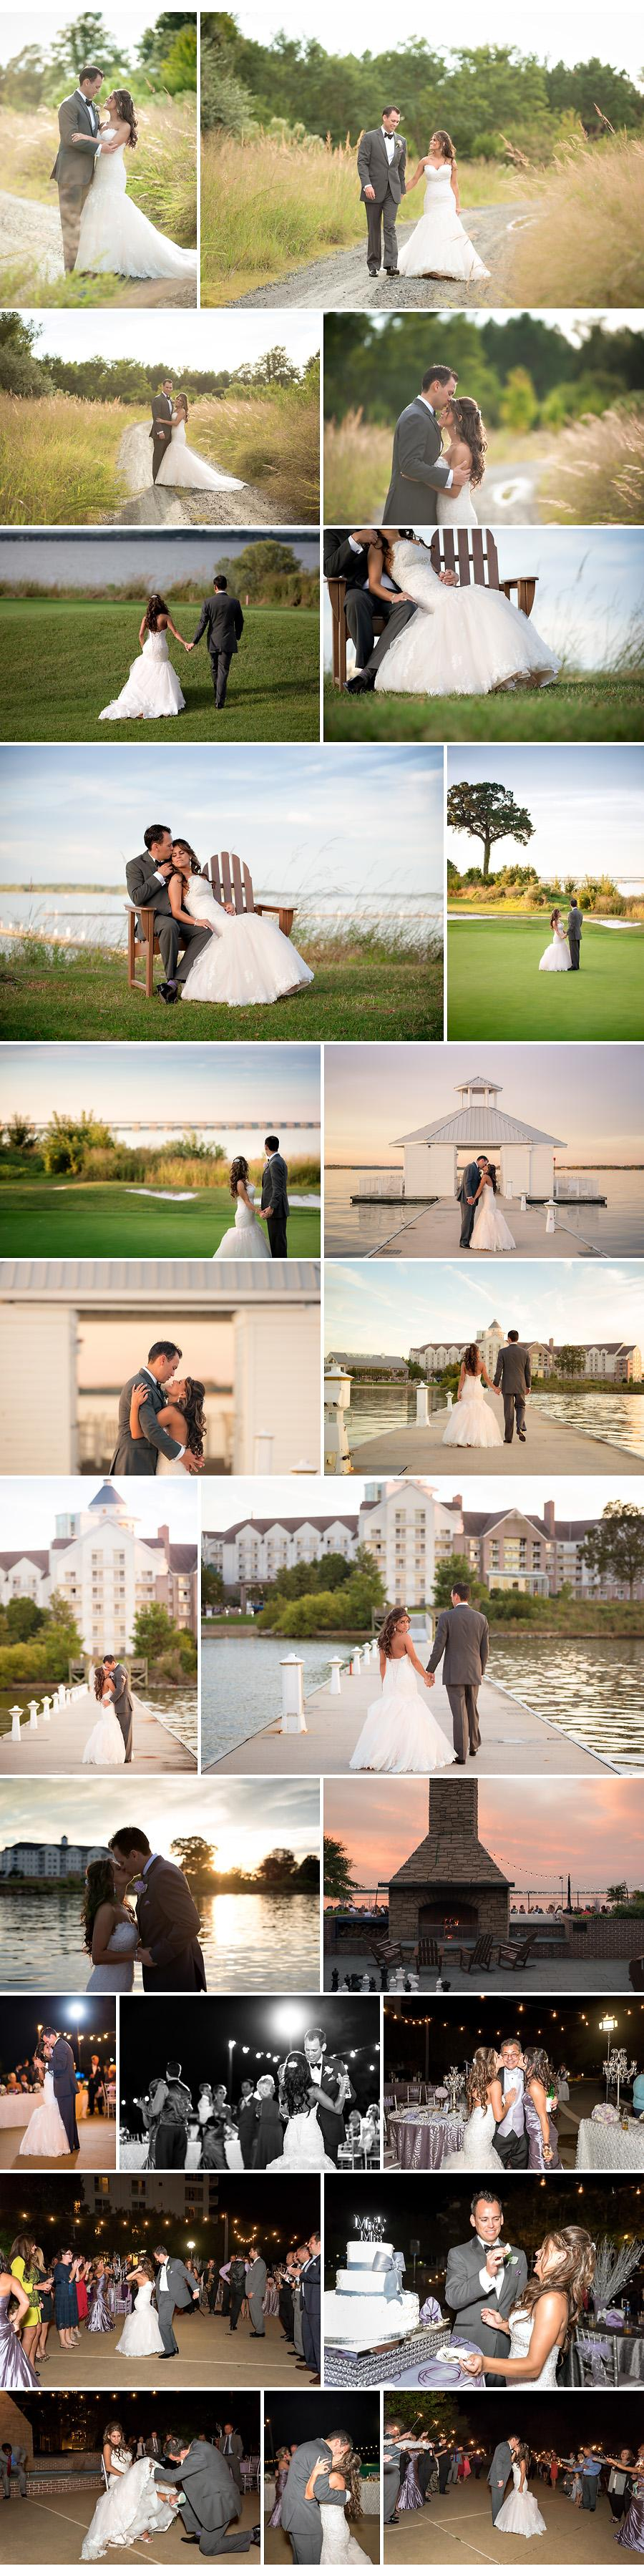 couples portraits on chesapeake bay